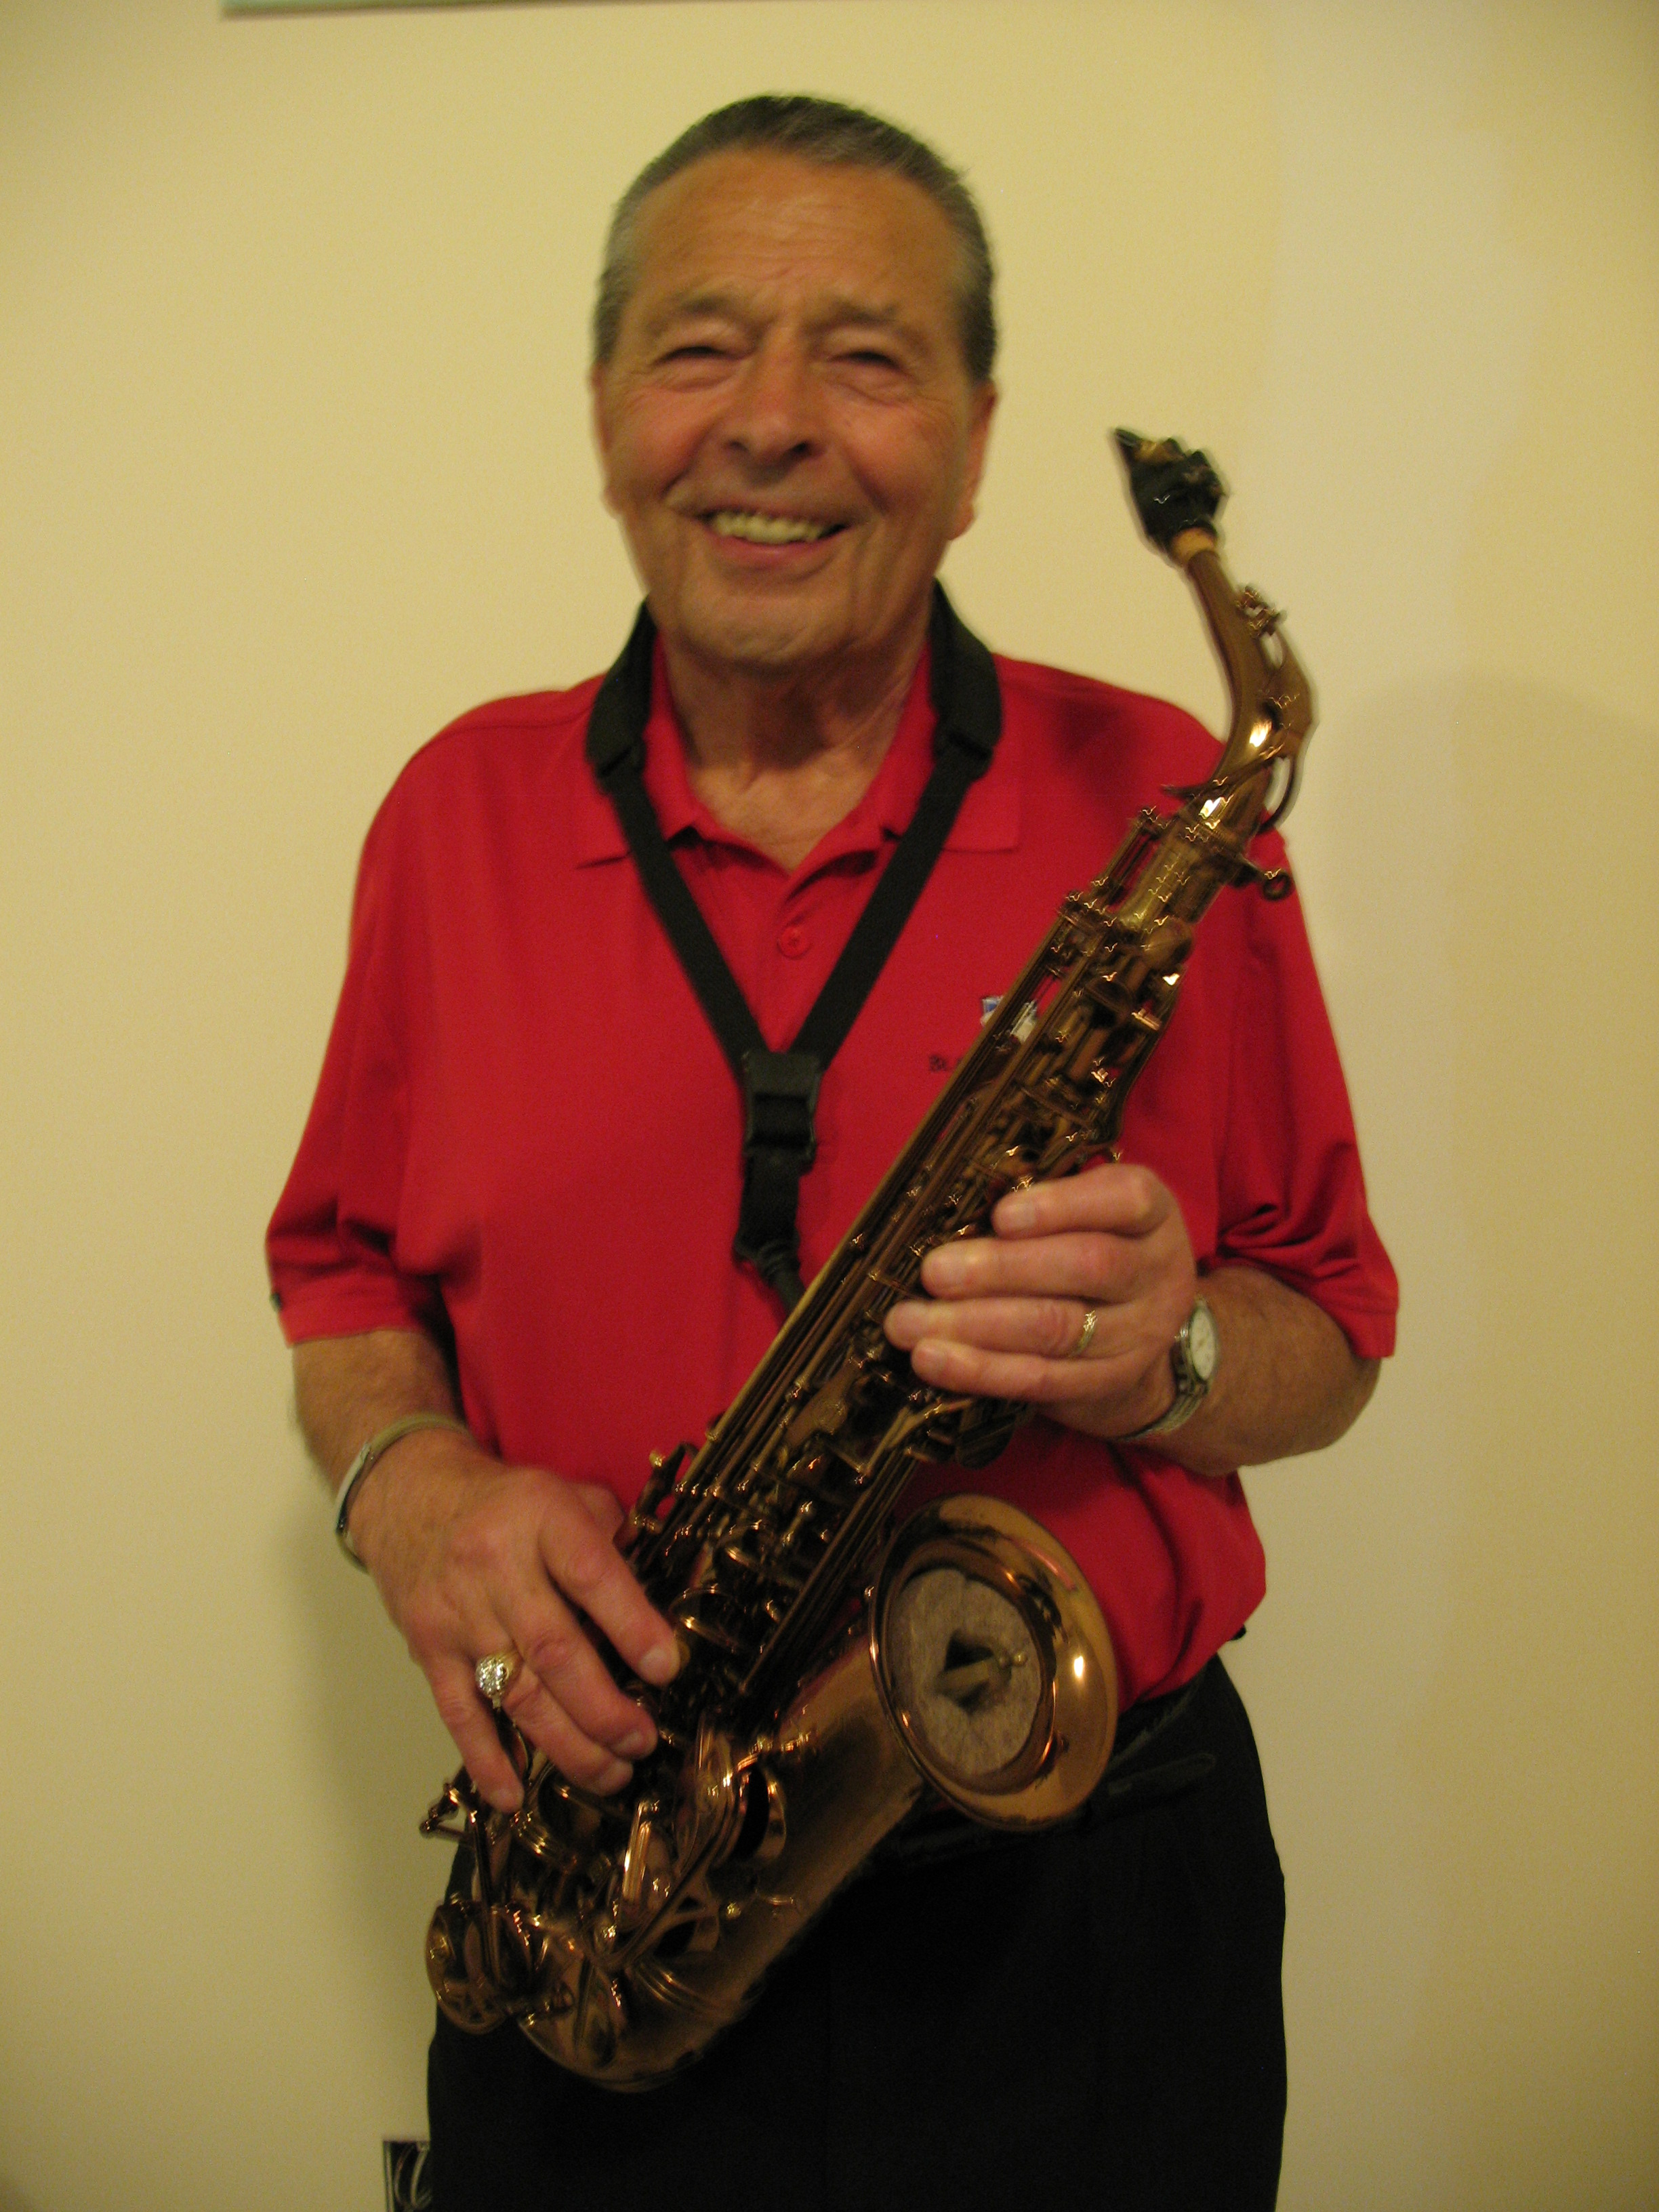 Garry Jespersen enjoys playing his sax